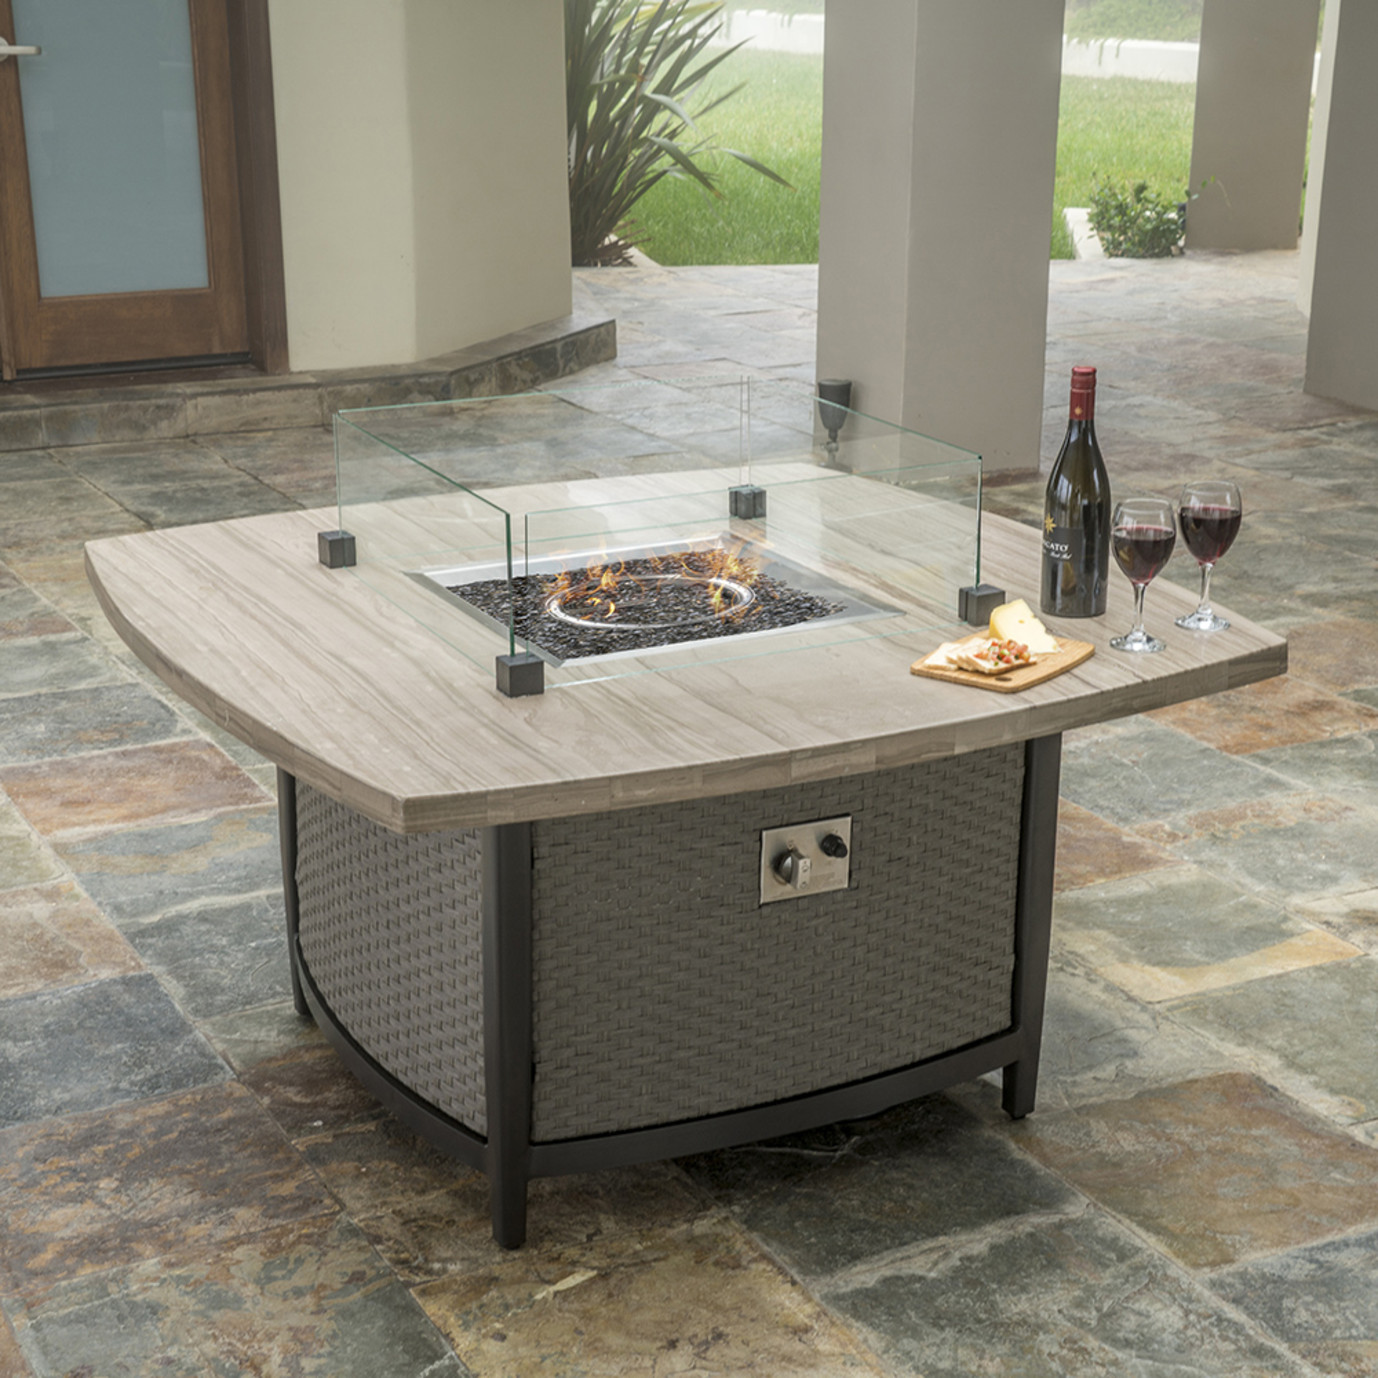 Vistano 48in Stone Top Fire Table Rst Brands